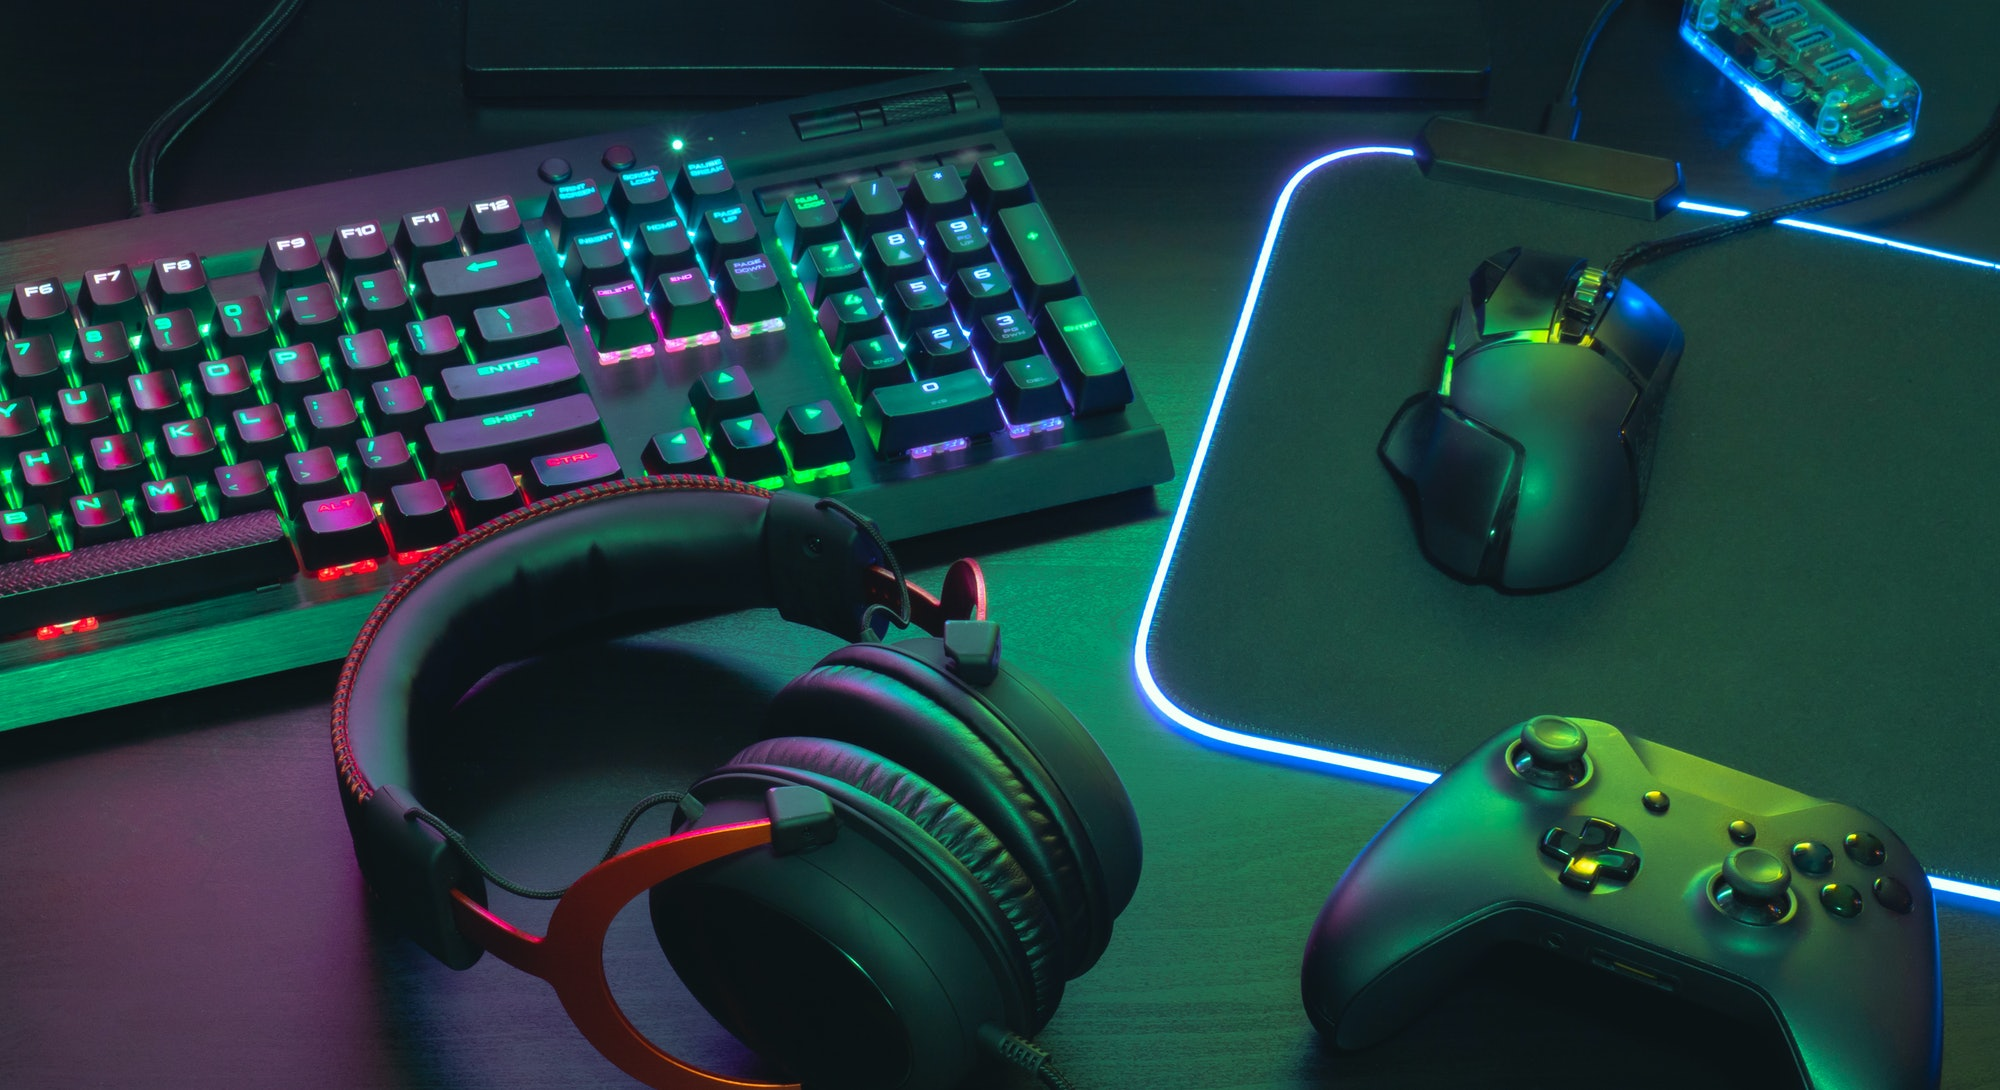 gamer work space concept, top view a gaming gear, mouse, keyboard, joystick, headset, mobile joystic...